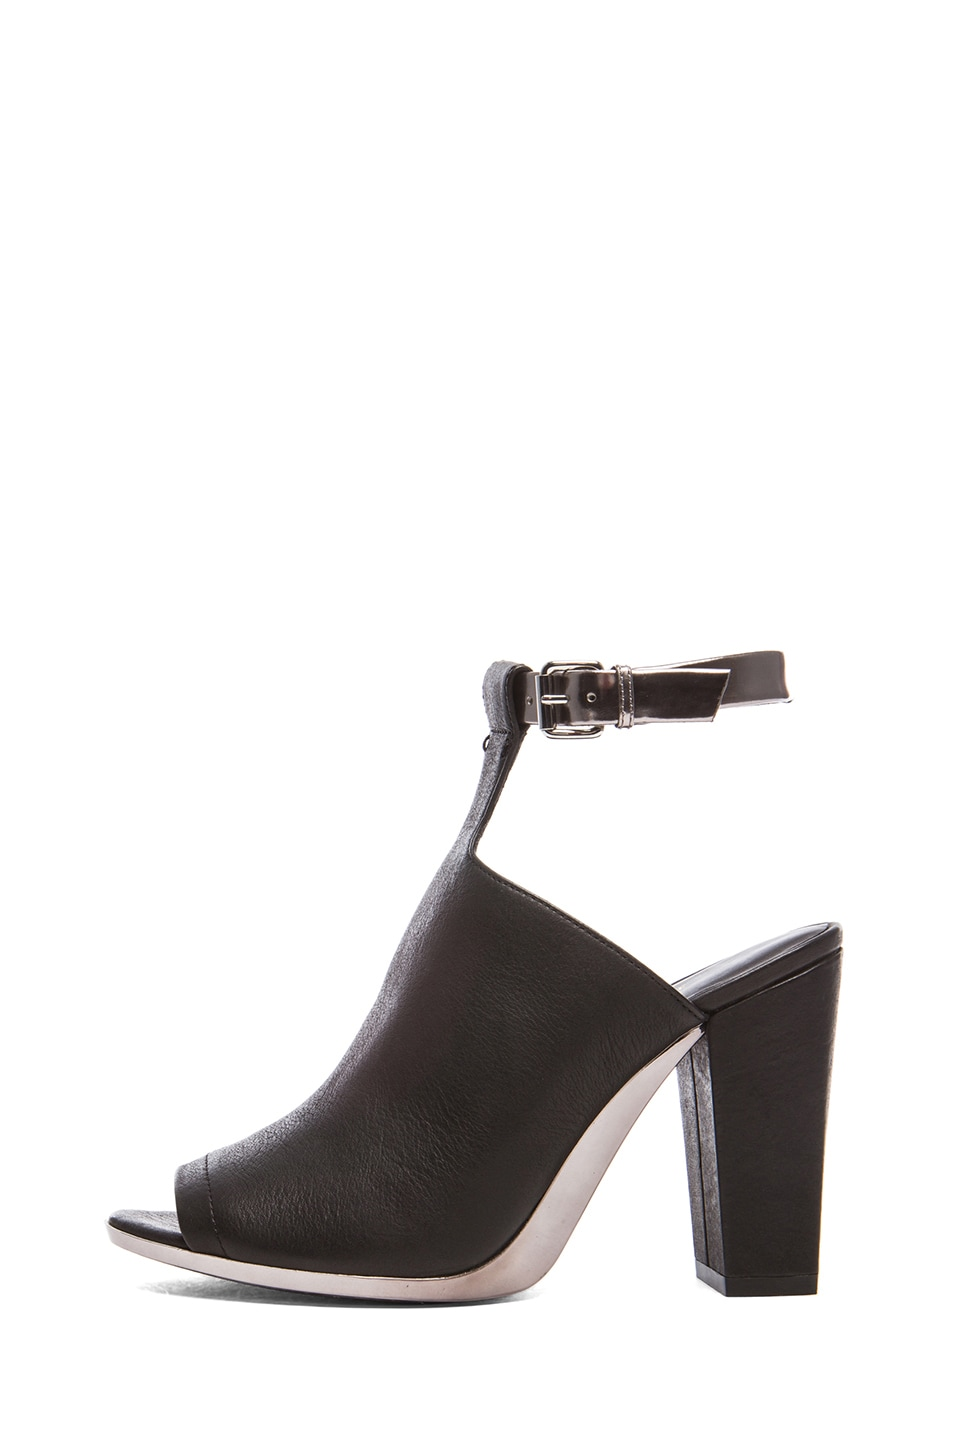 Image 1 of 3.1 phillip lim Vincent Leather Ankle Strap Mules in Black & Gunmetal